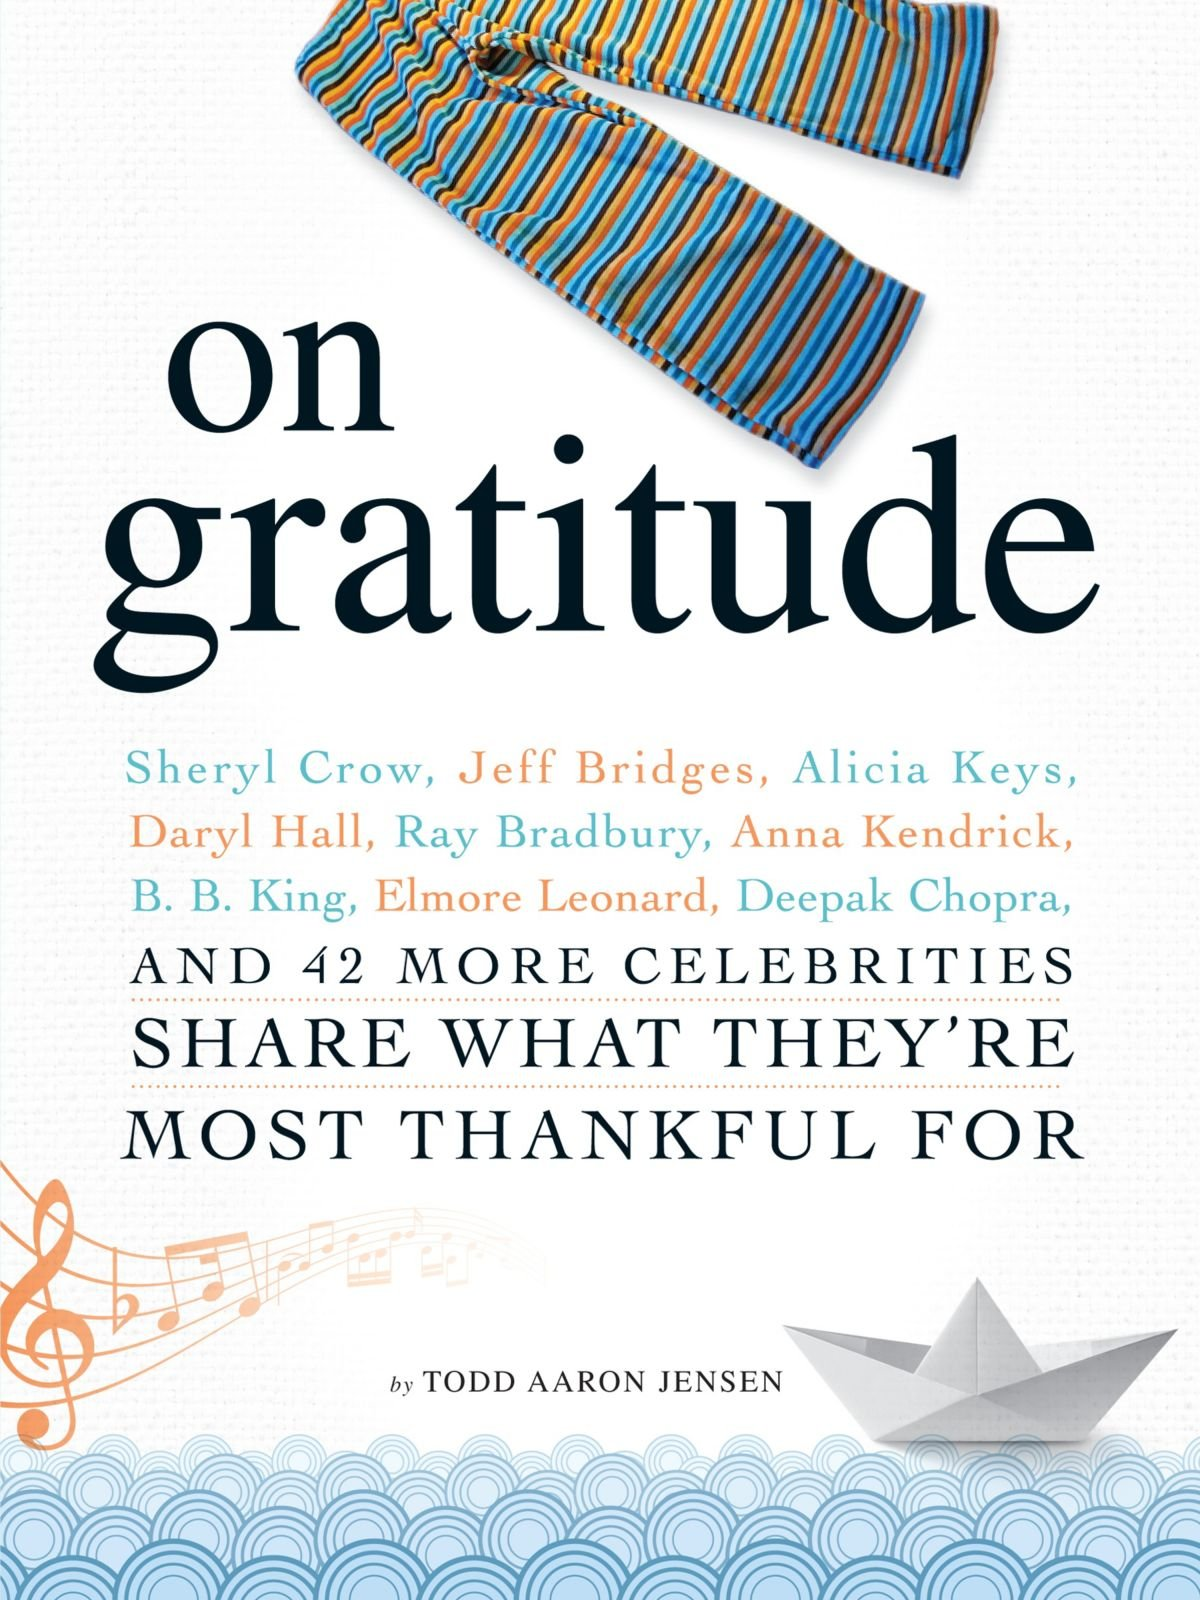 on gratitude sheryl crow jeff bridges alicia keys daryl hall on gratitude sheryl crow jeff bridges alicia keys daryl hall ray bradbury anna kendrick b b king elmore leonard deepak chopra